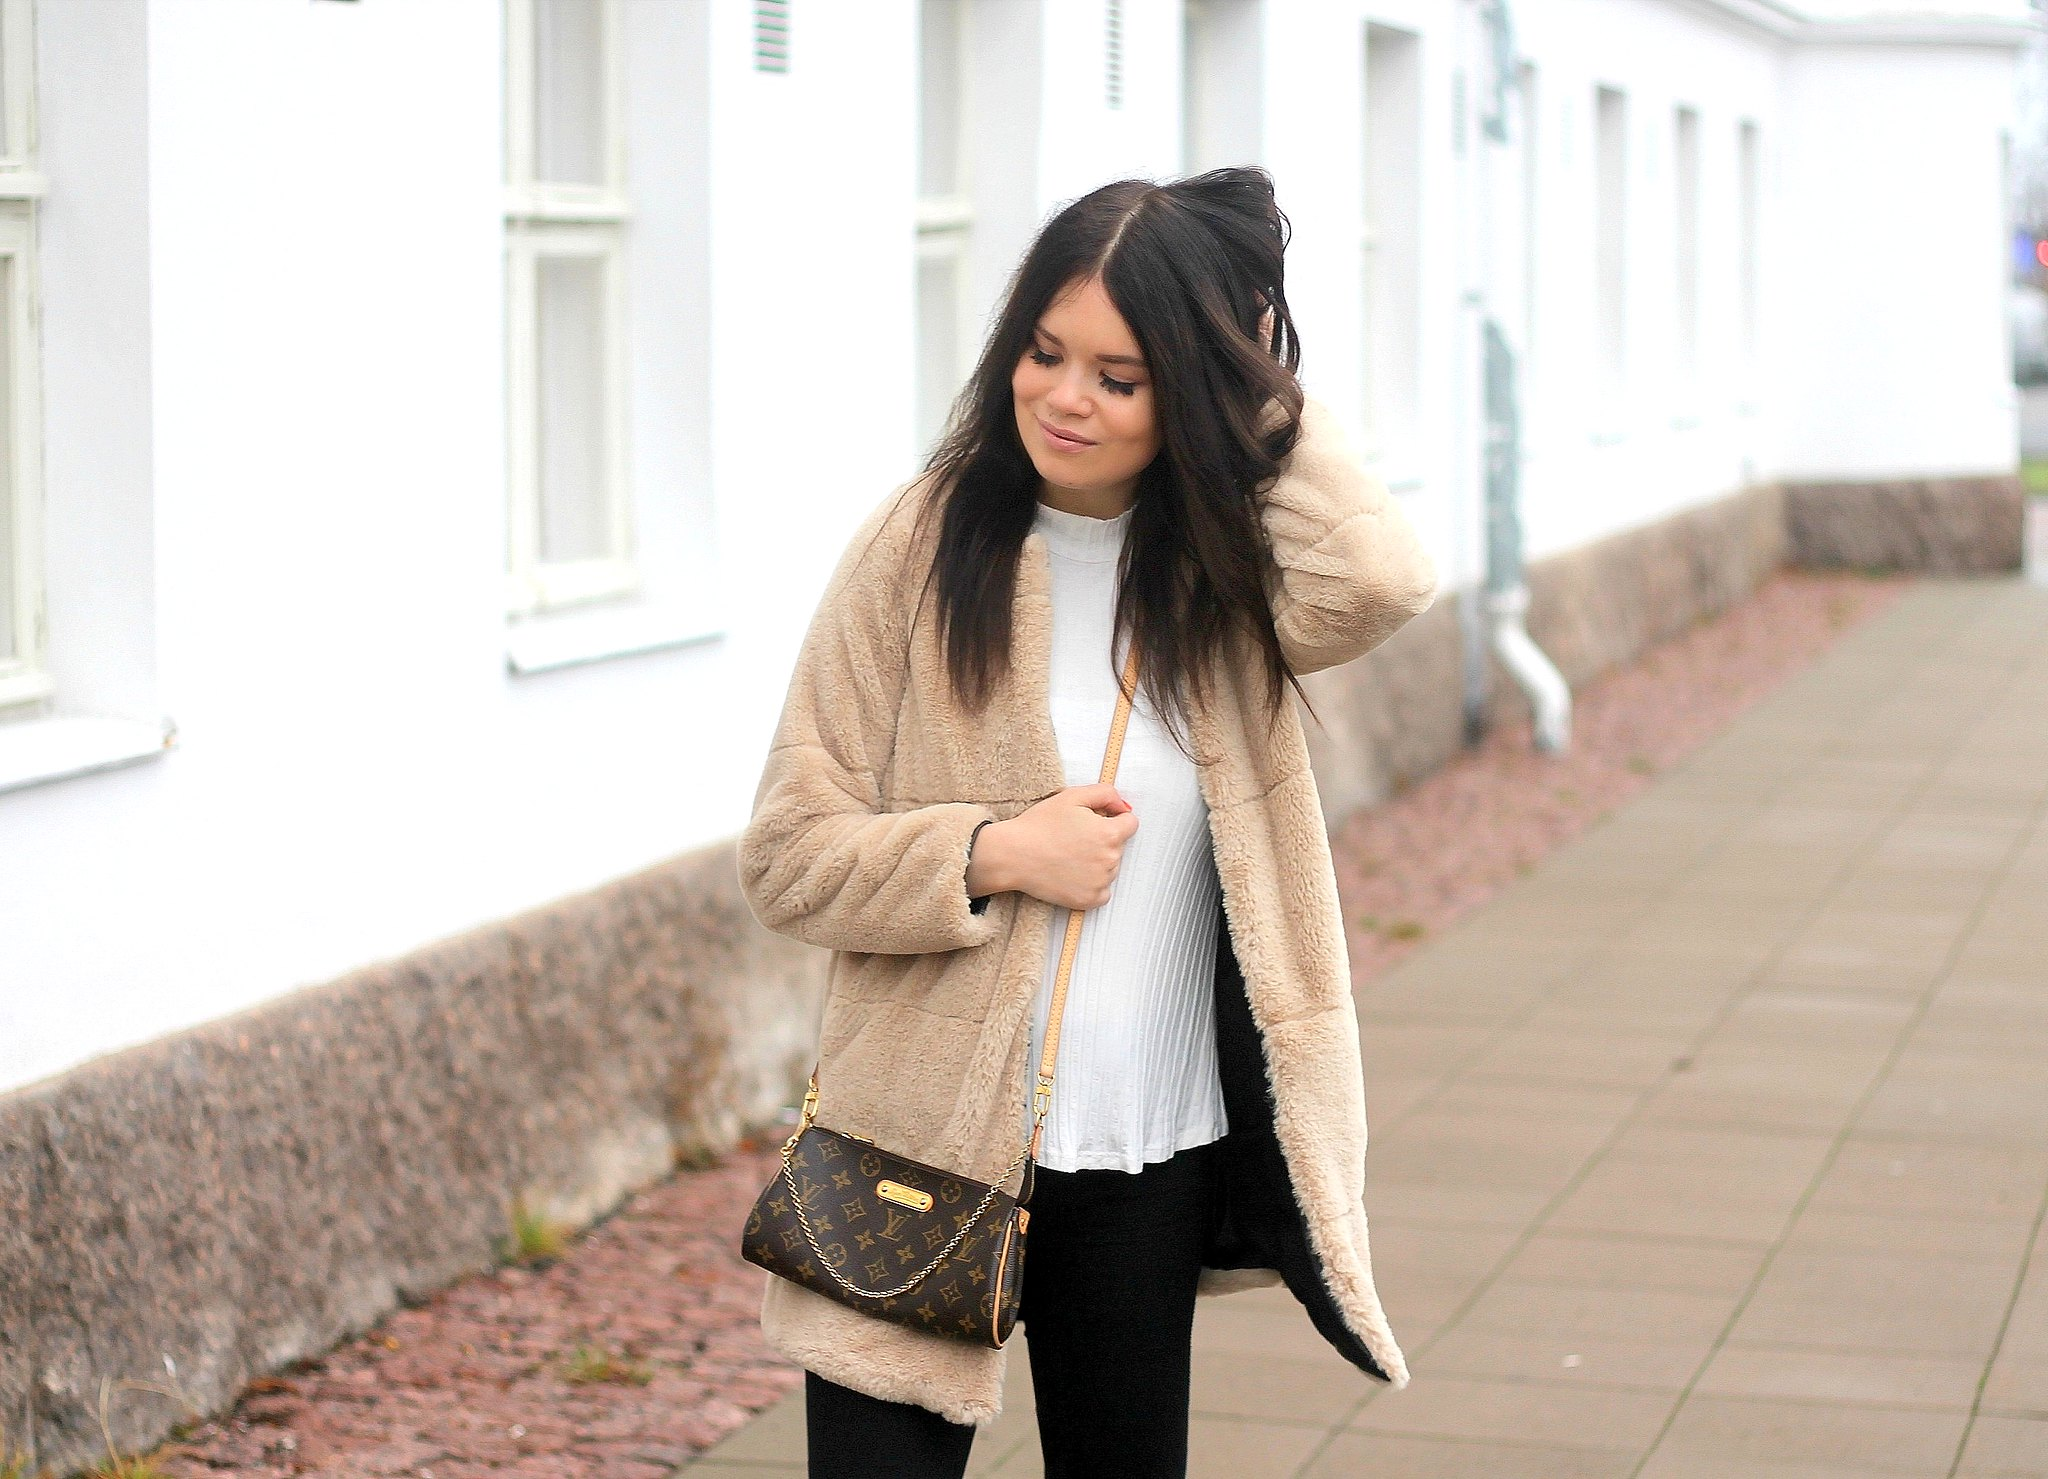 furry jacket outfit